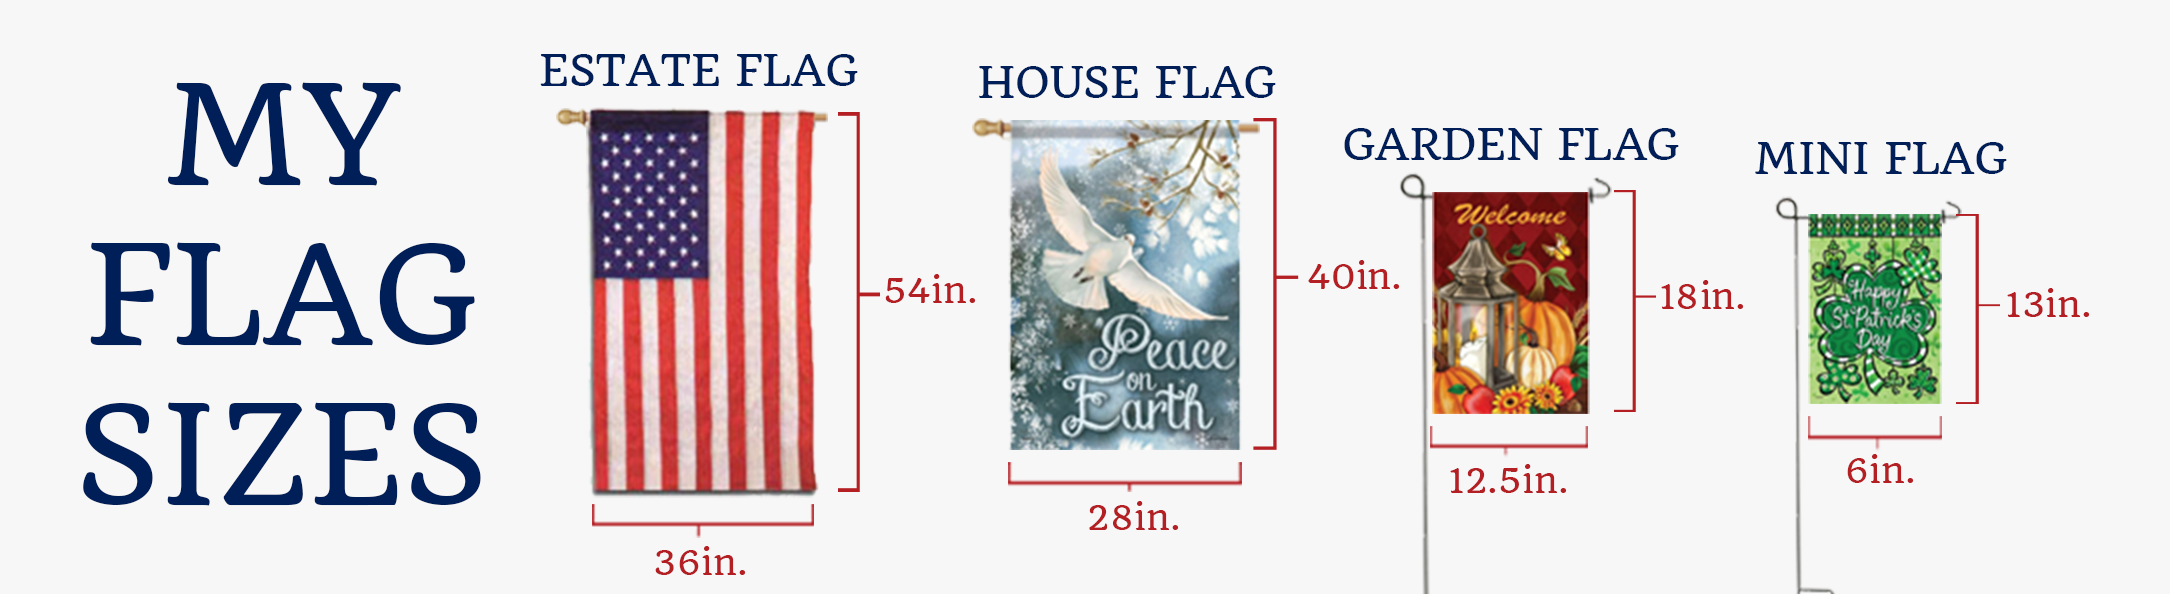 Decorative Flags Free Shipping On All Decorative Flags Flagsrus Org